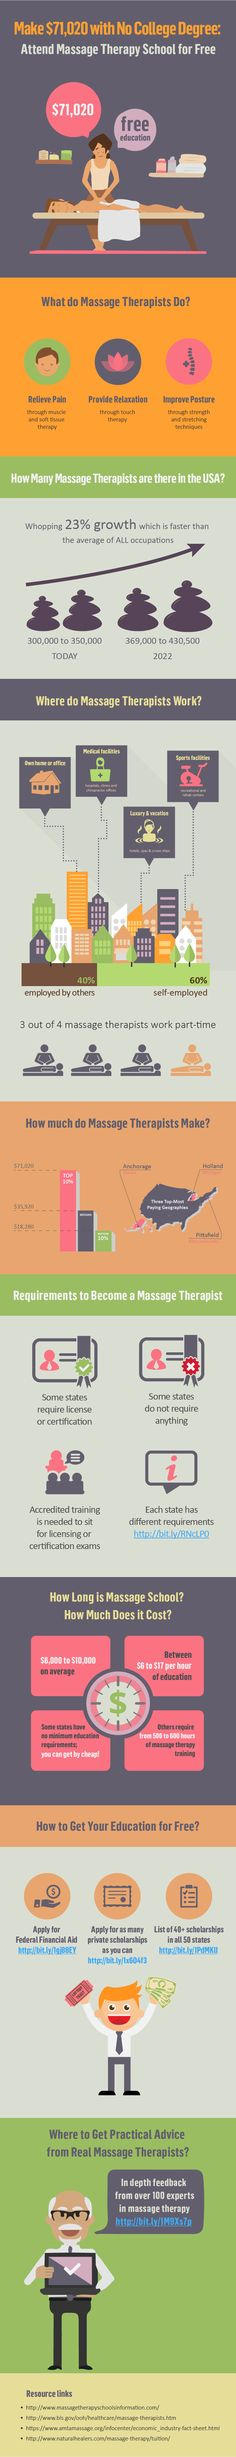 sample resume for massage therapist student%0A How do I get started working as a massage therapist  What are the pros and  cons